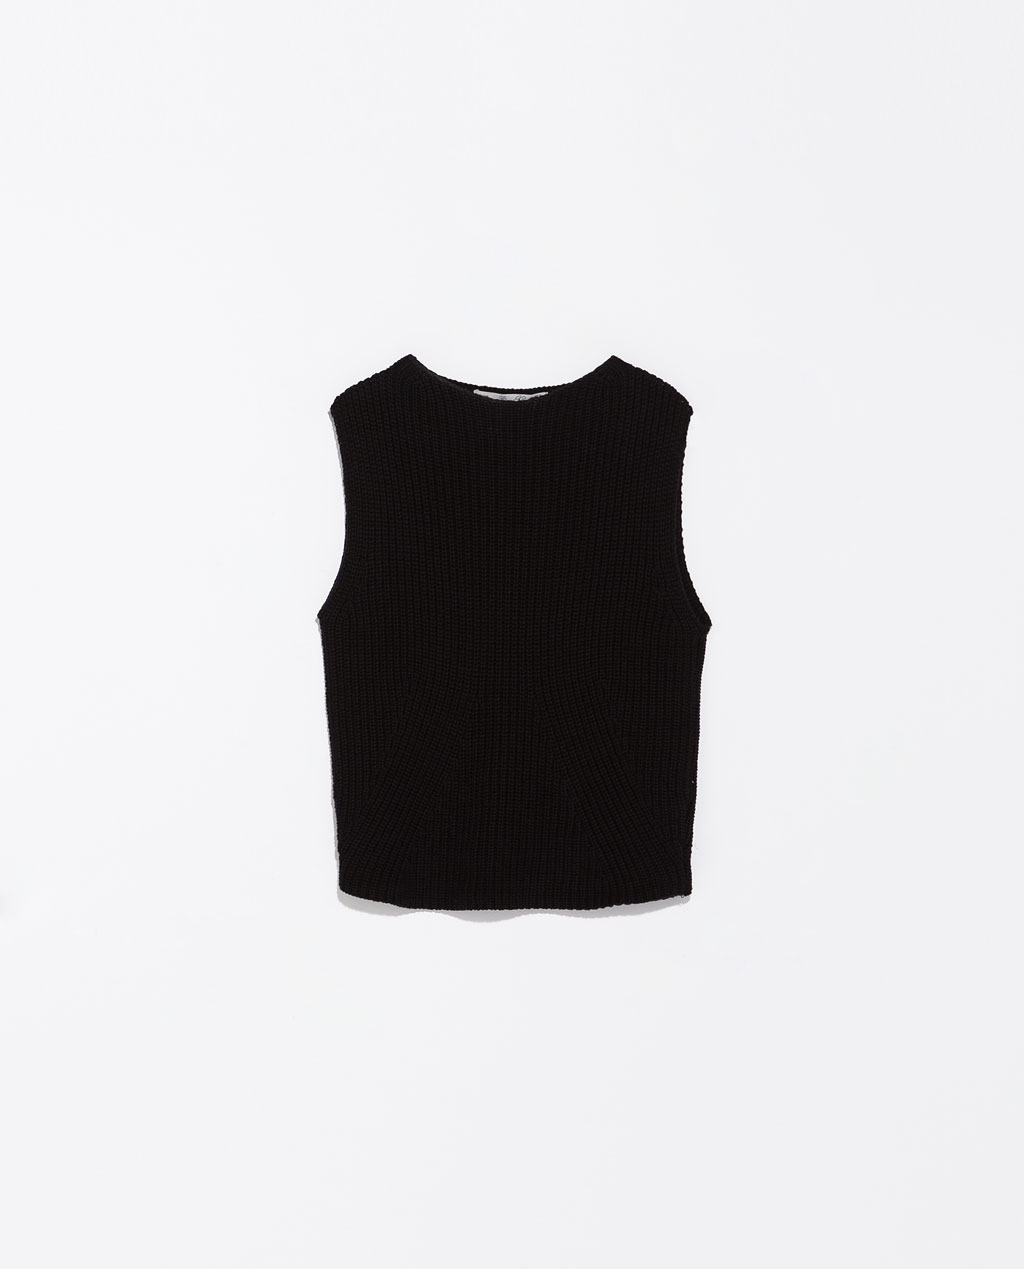 Pearl Knit Top - neckline: round neck; pattern: plain; sleeve style: sleeveless; length: cropped; predominant colour: black; occasions: casual, evening; style: top; fibres: cotton - 100%; fit: straight cut; sleeve length: sleeveless; texture group: knits/crochet; pattern type: knitted - other; season: s/s 2014